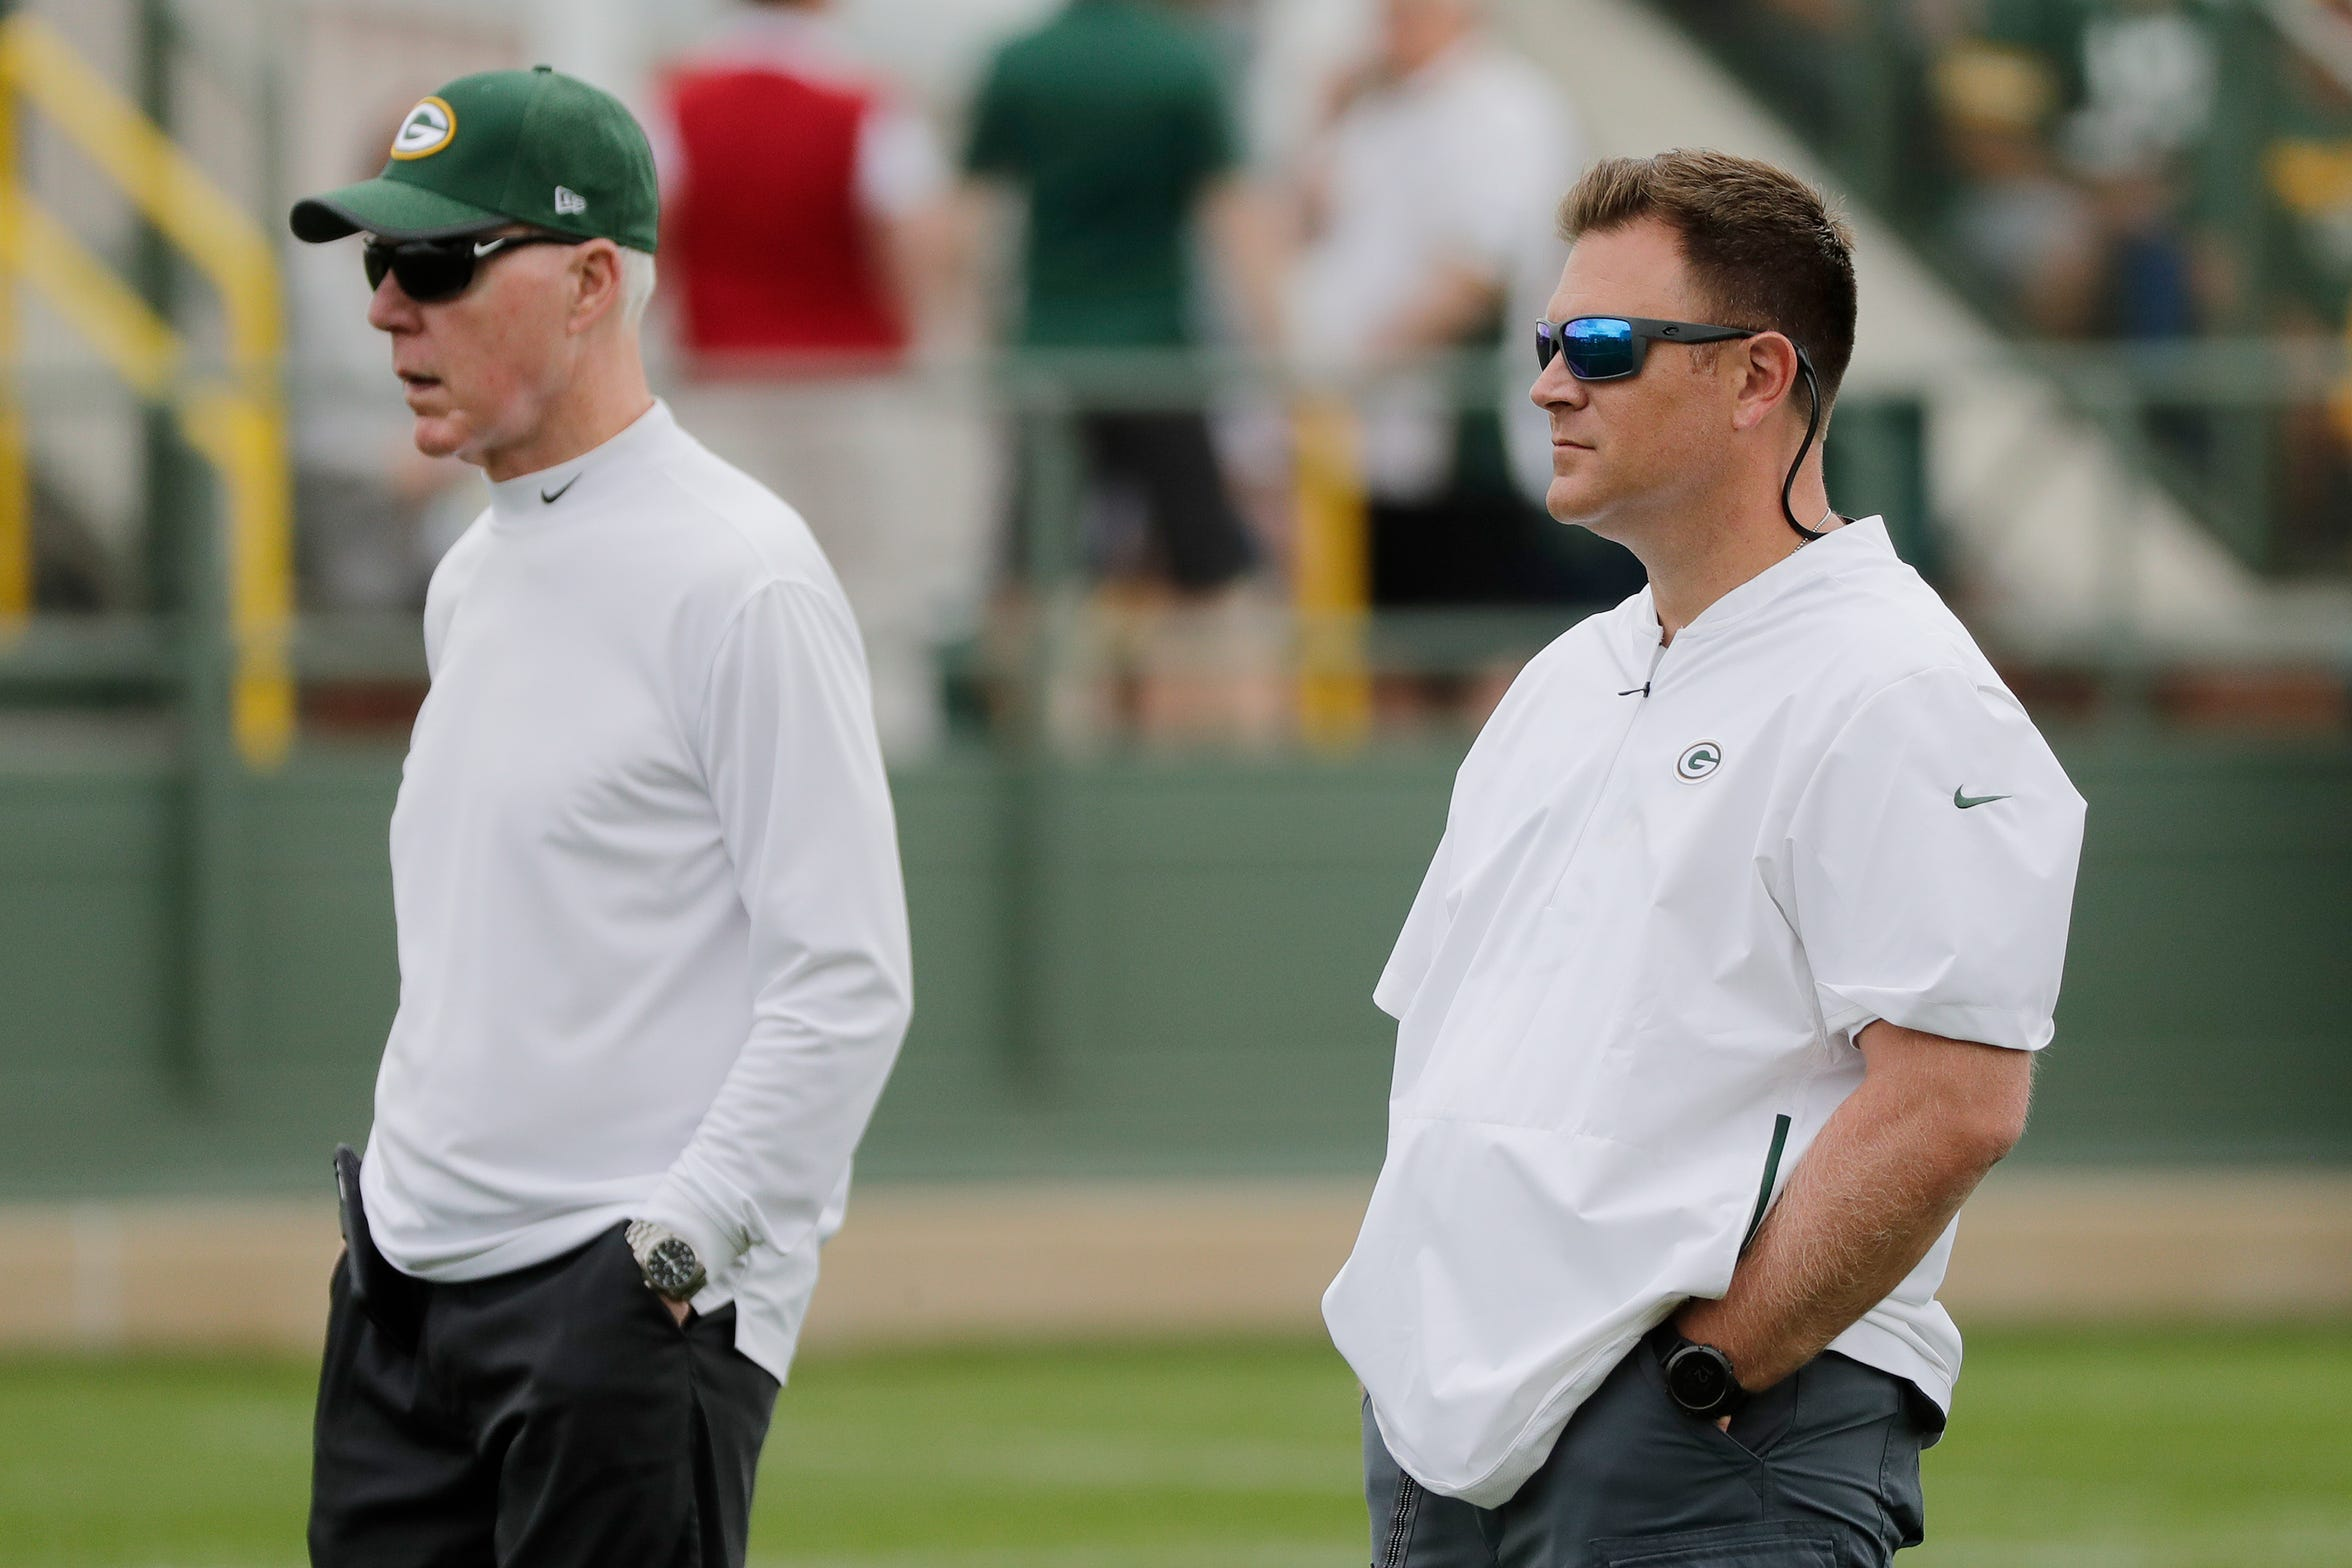 Packers GM Brian Gutekunst (right) and former GM Ted Thompson watch training camp practice at Ray Nitschke Field on Thursday, July 26, 2018 in Ashwaubenon, Wis.